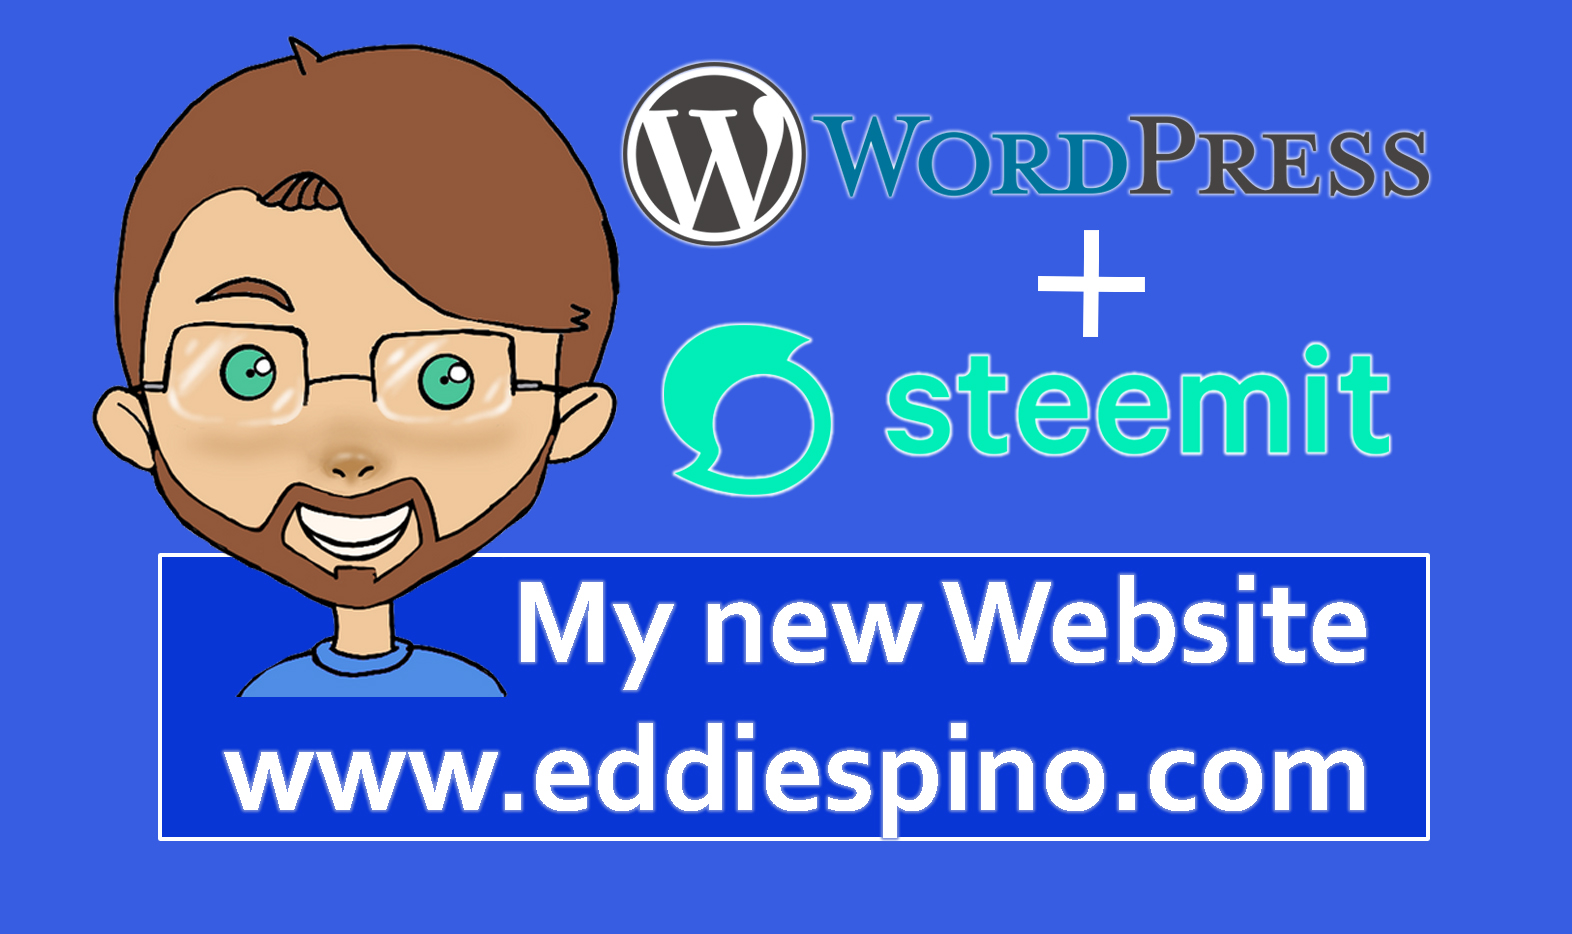 wordpress_steemit_eddiespino